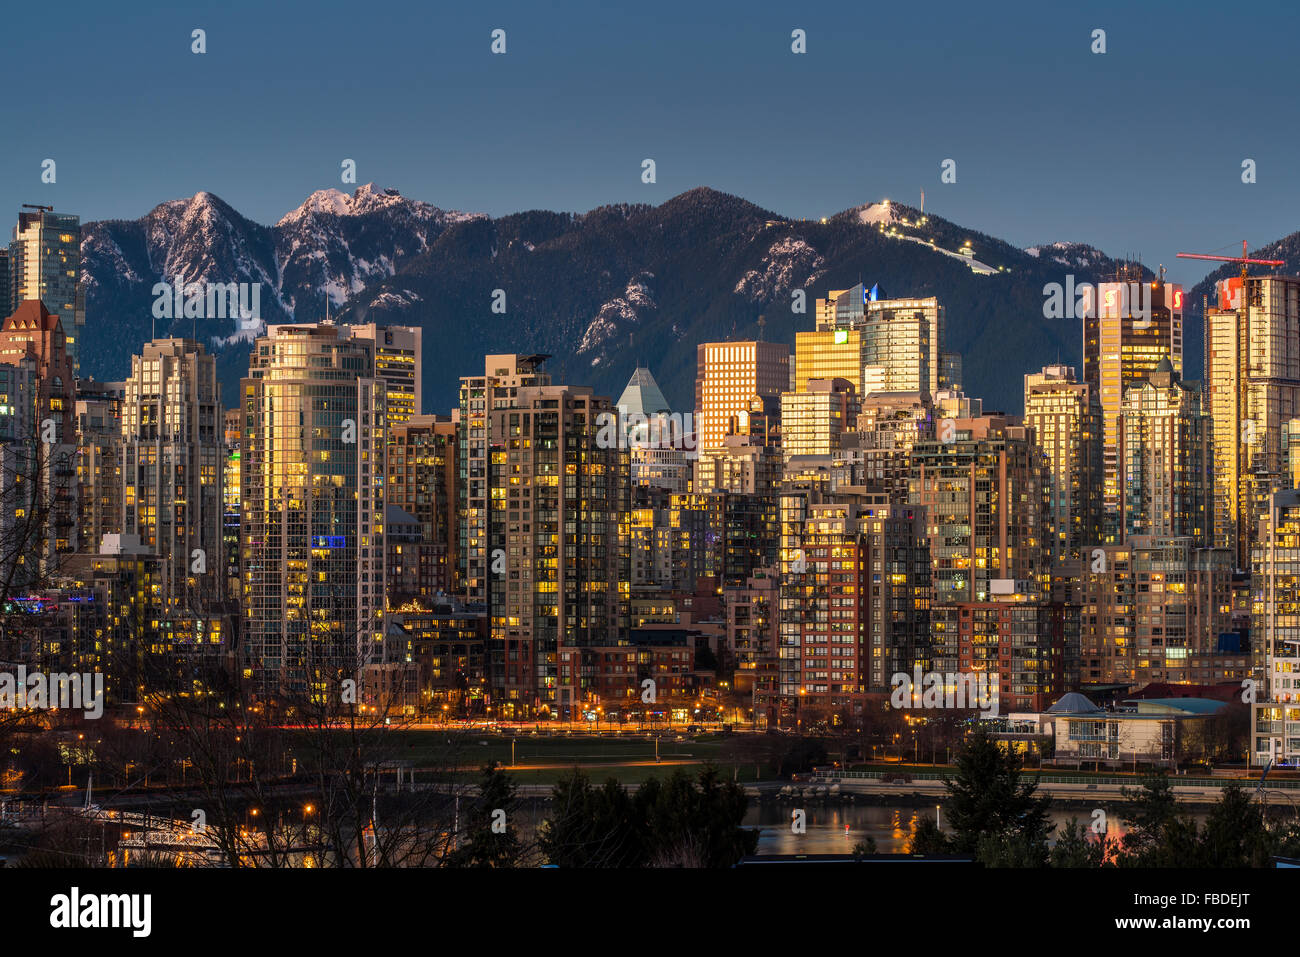 Downtown skyline with snowy mountains behind at dusk, Vancouver, British Columbia, Canada - Stock Image